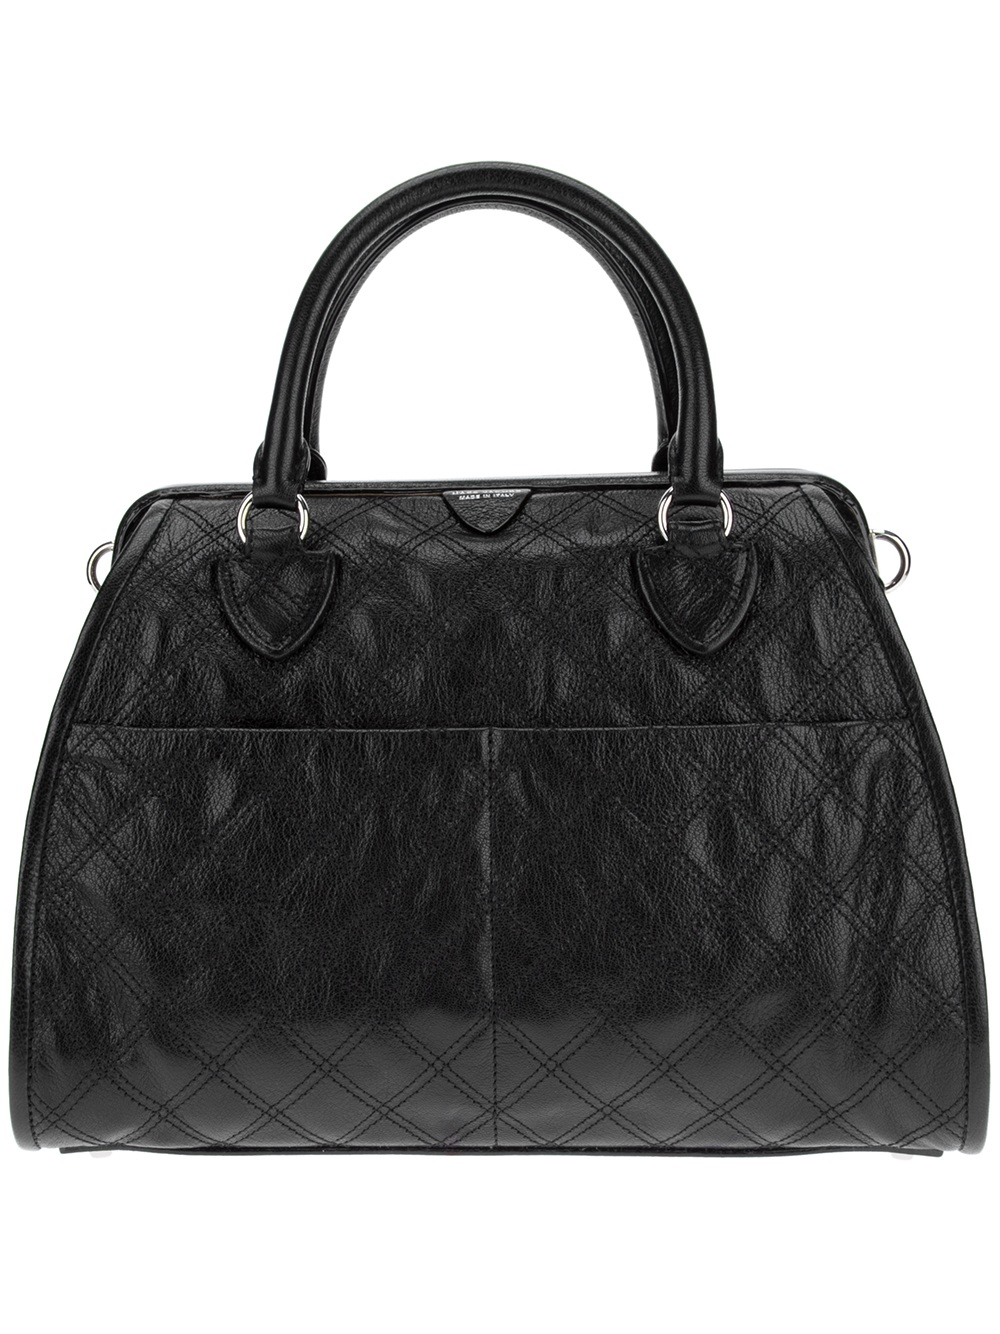 Marc Jacobs Quilted Tote Bag In Black Lyst